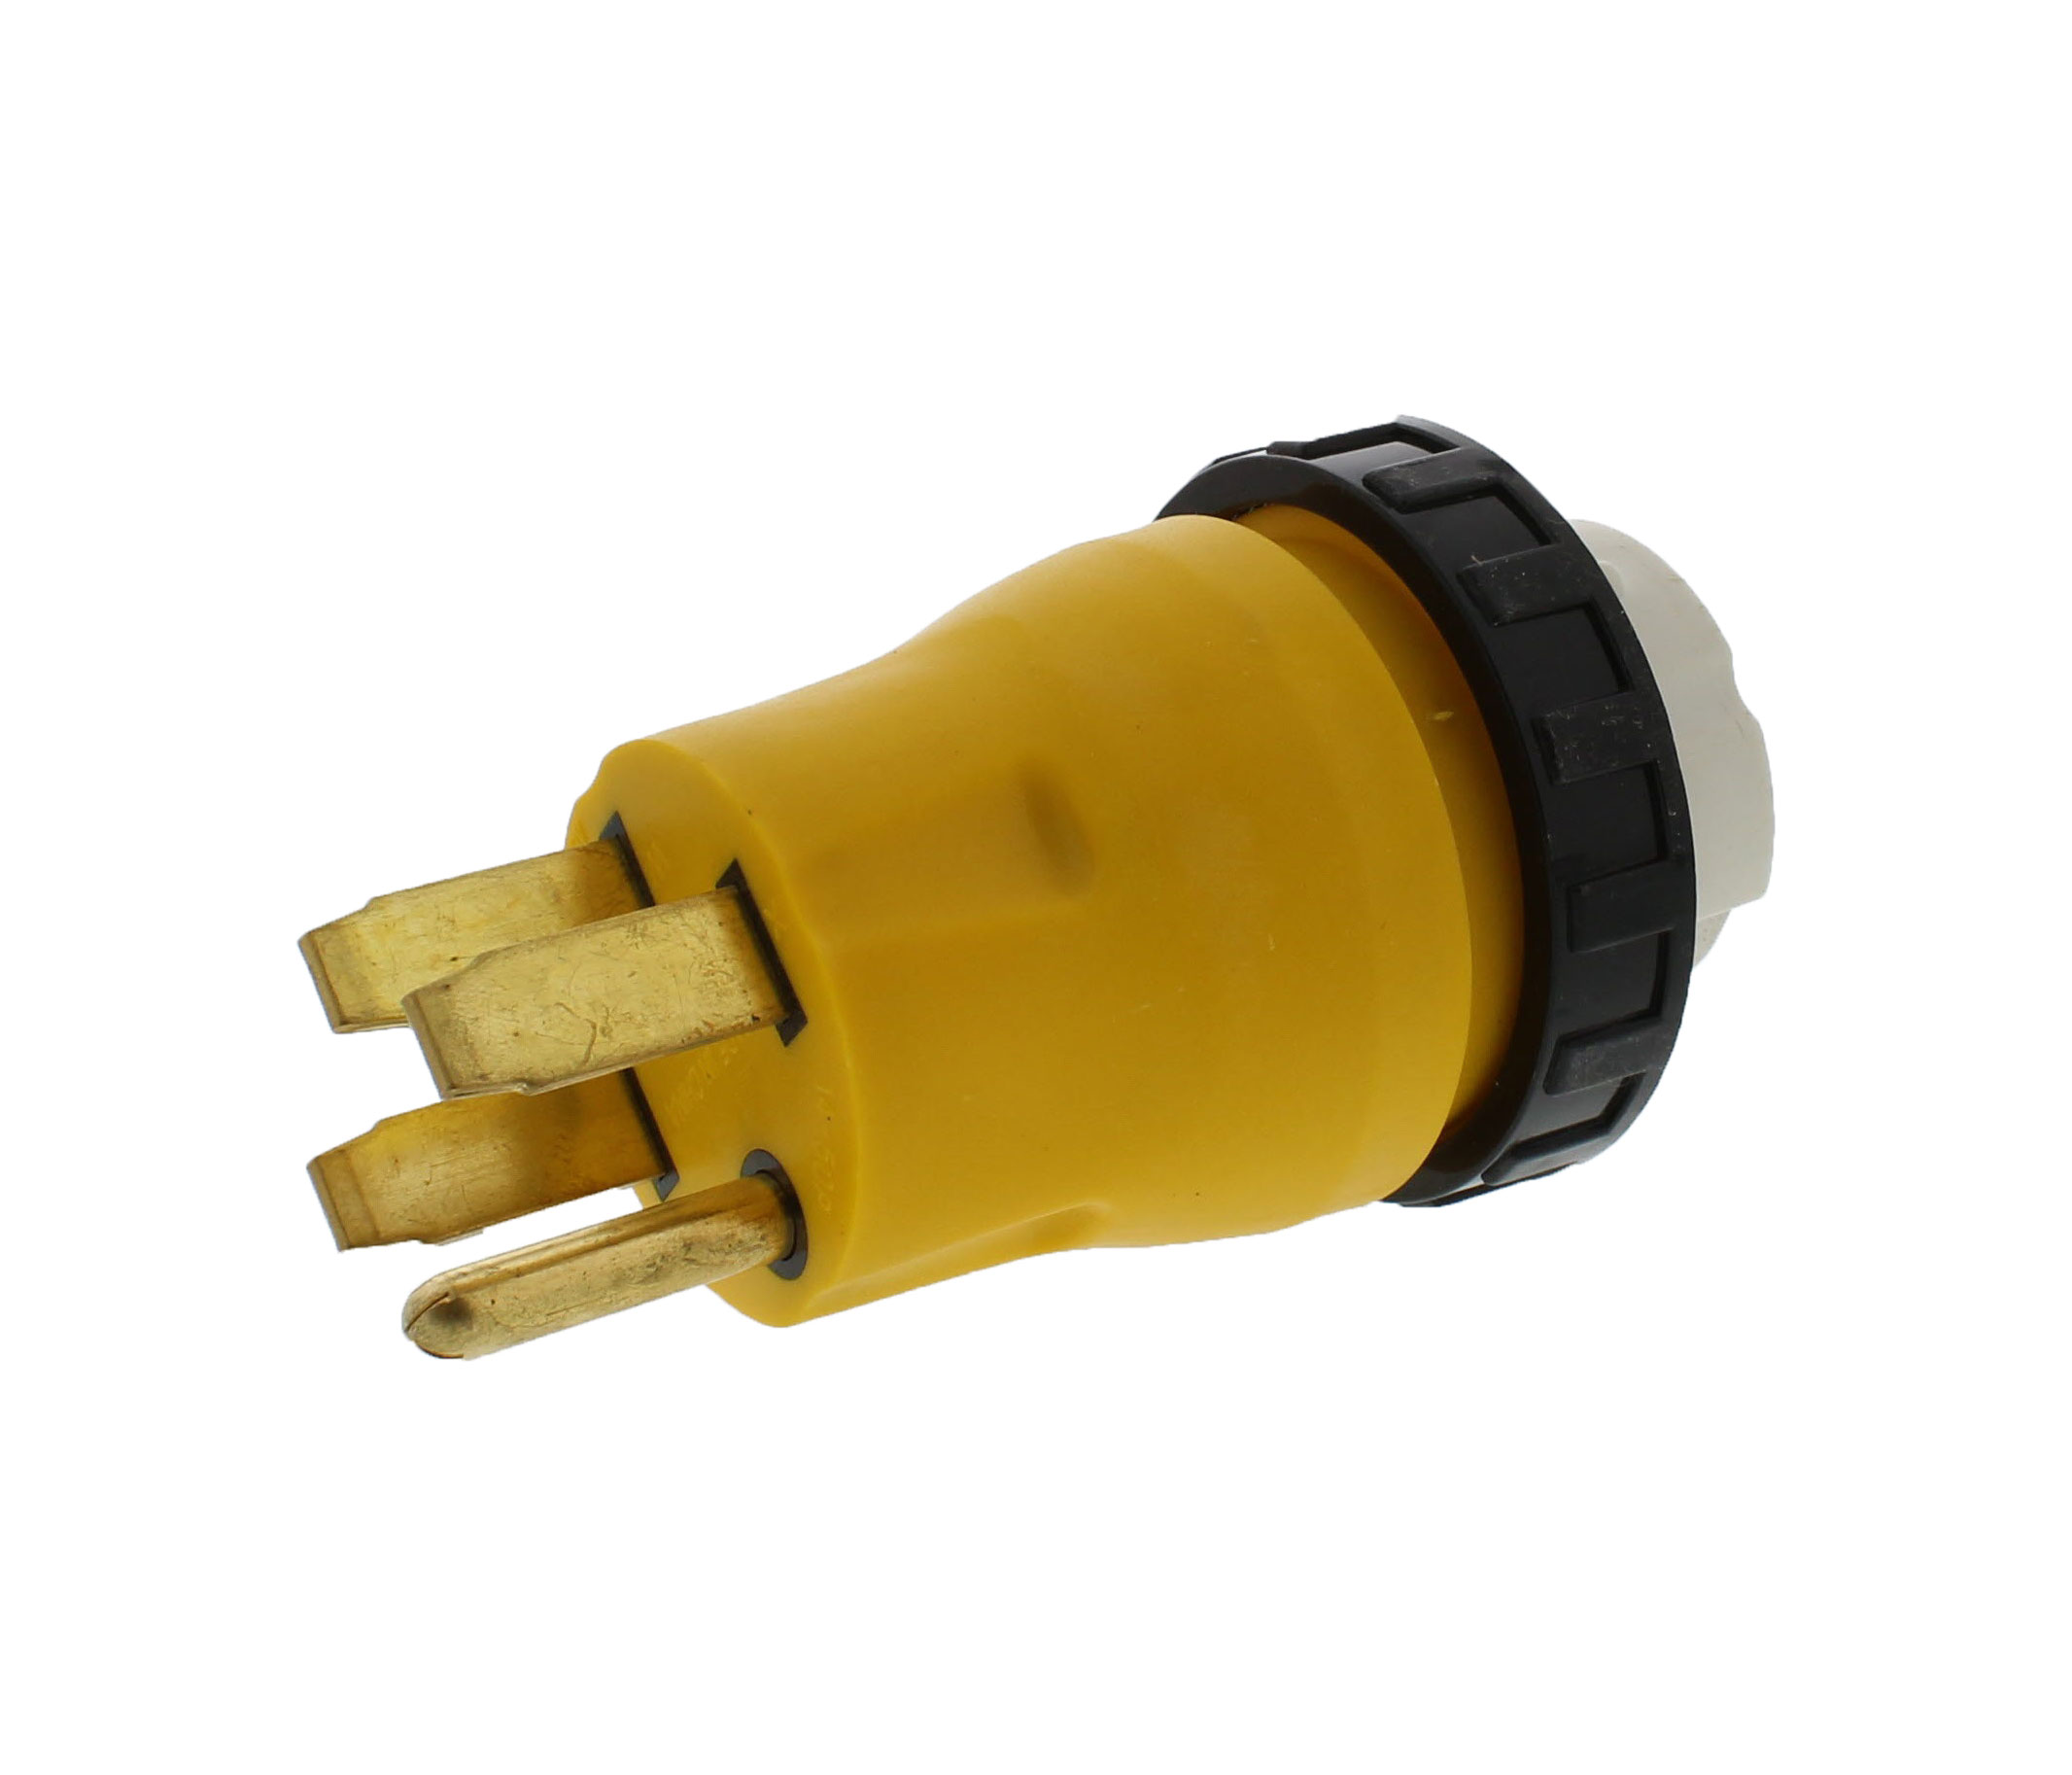 Electrical Power Cord : Abn rv power cord electrical locking adapter male to